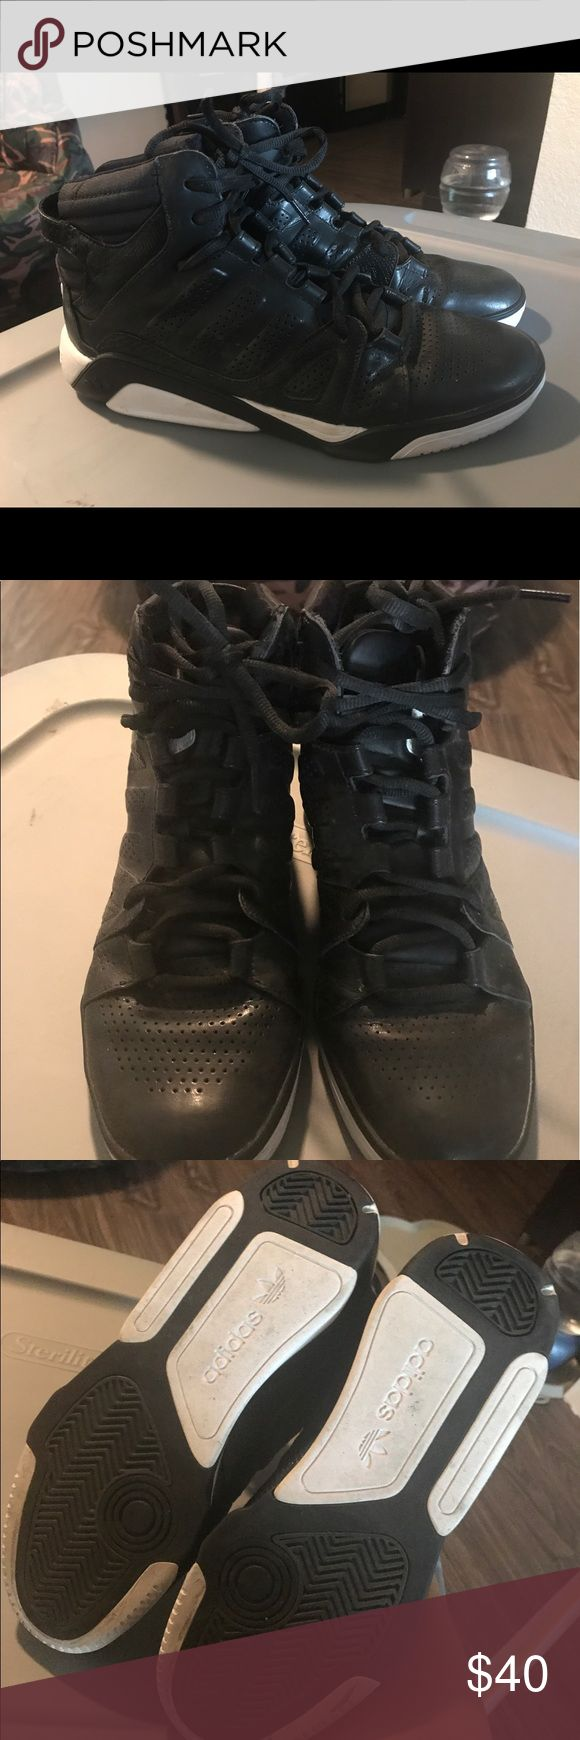 Adidas basketball shoes Size 10, good condition adidas Shoes Athletic Shoes